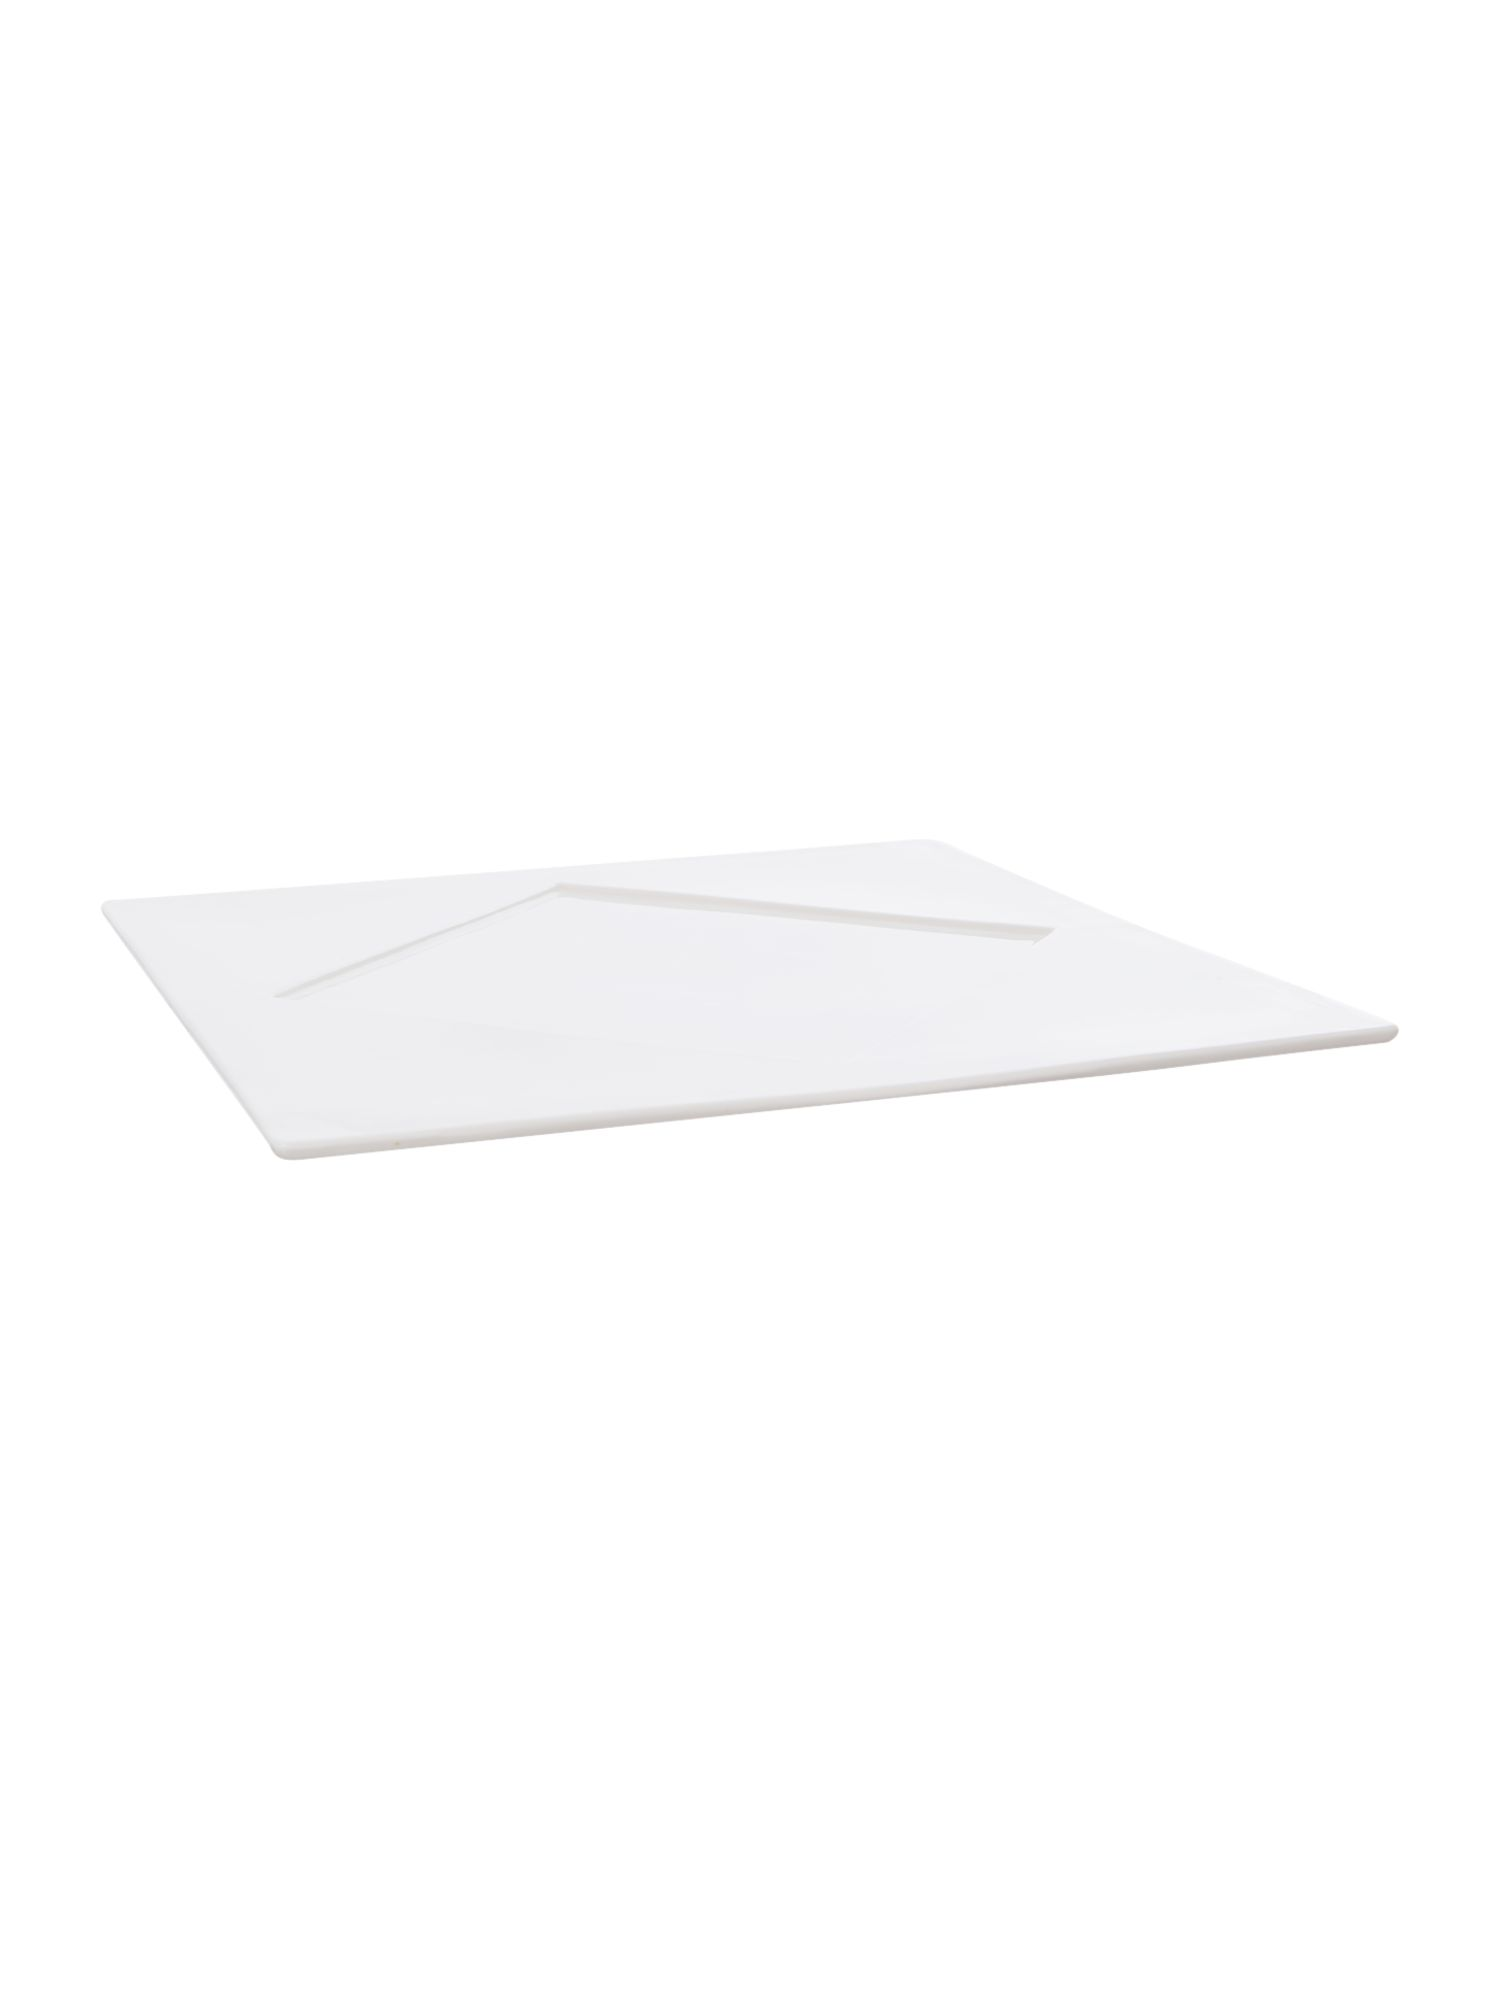 Metrix square platter 30.5cm, diamond